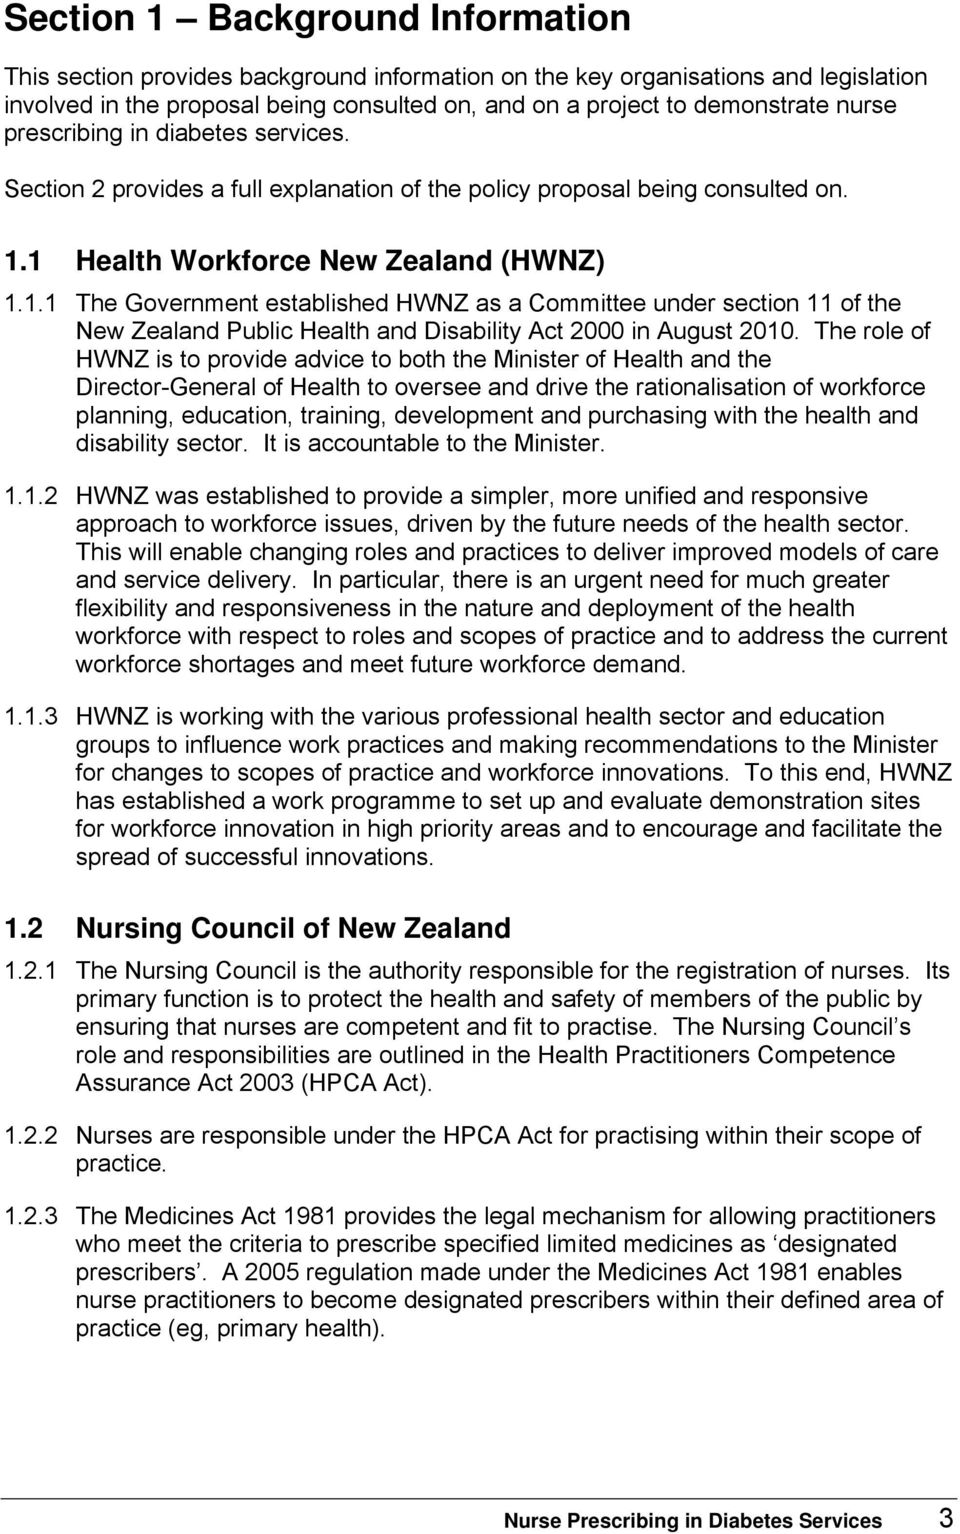 1 Health Workforce New Zealand (HWNZ) 1.1.1 The Government established HWNZ as a Committee under section 11 of the New Zealand Public Health and Disability Act 2000 in August 2010.